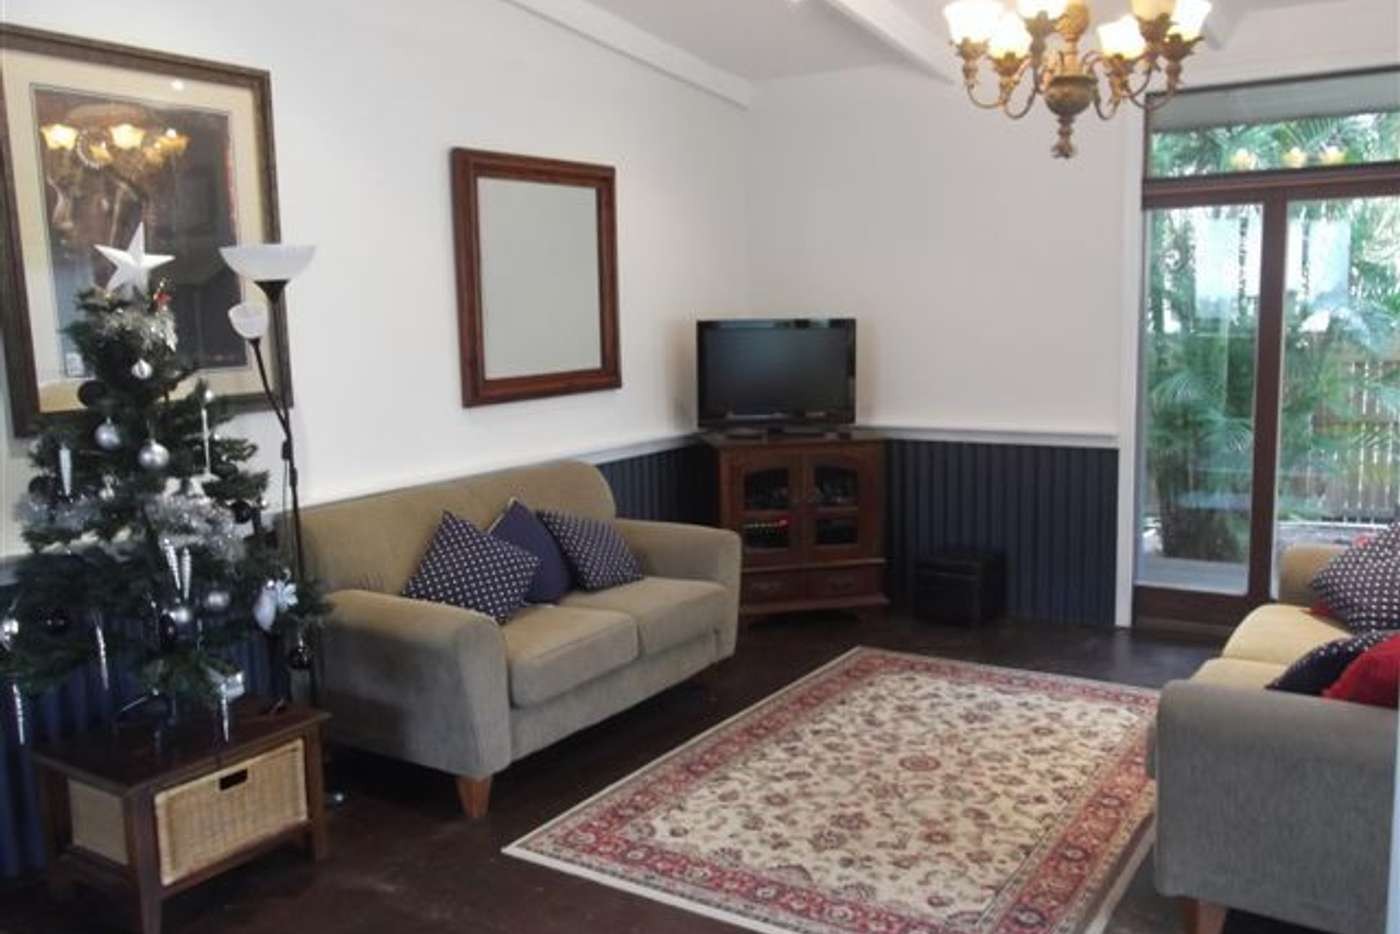 Main view of Homely house listing, 28 Billington Street, Labrador QLD 4215